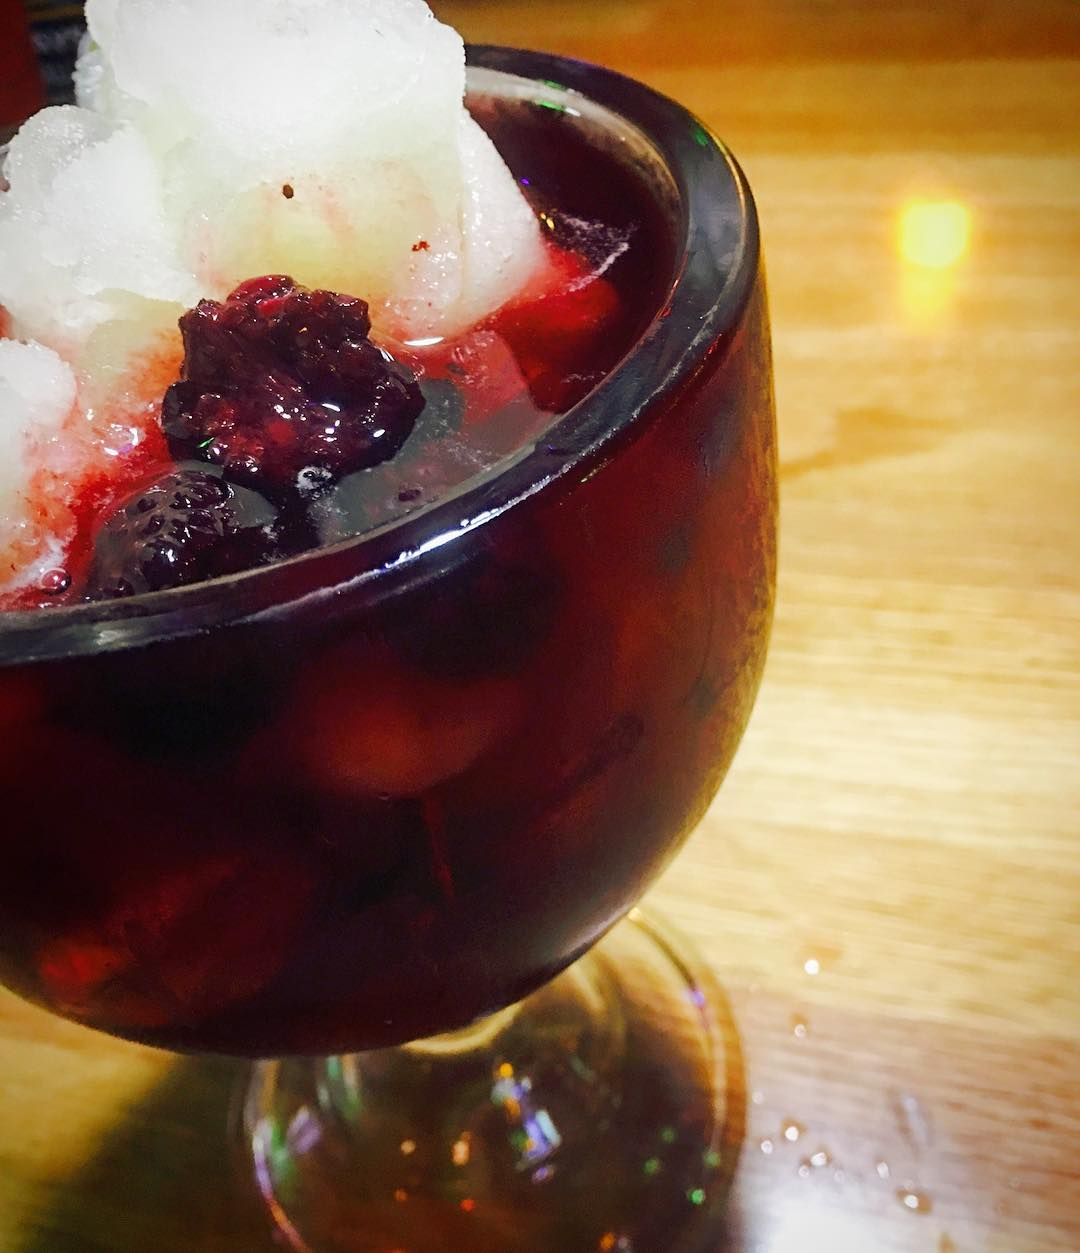 Awesome frozen lemonade with black berries. Pic by arcevox